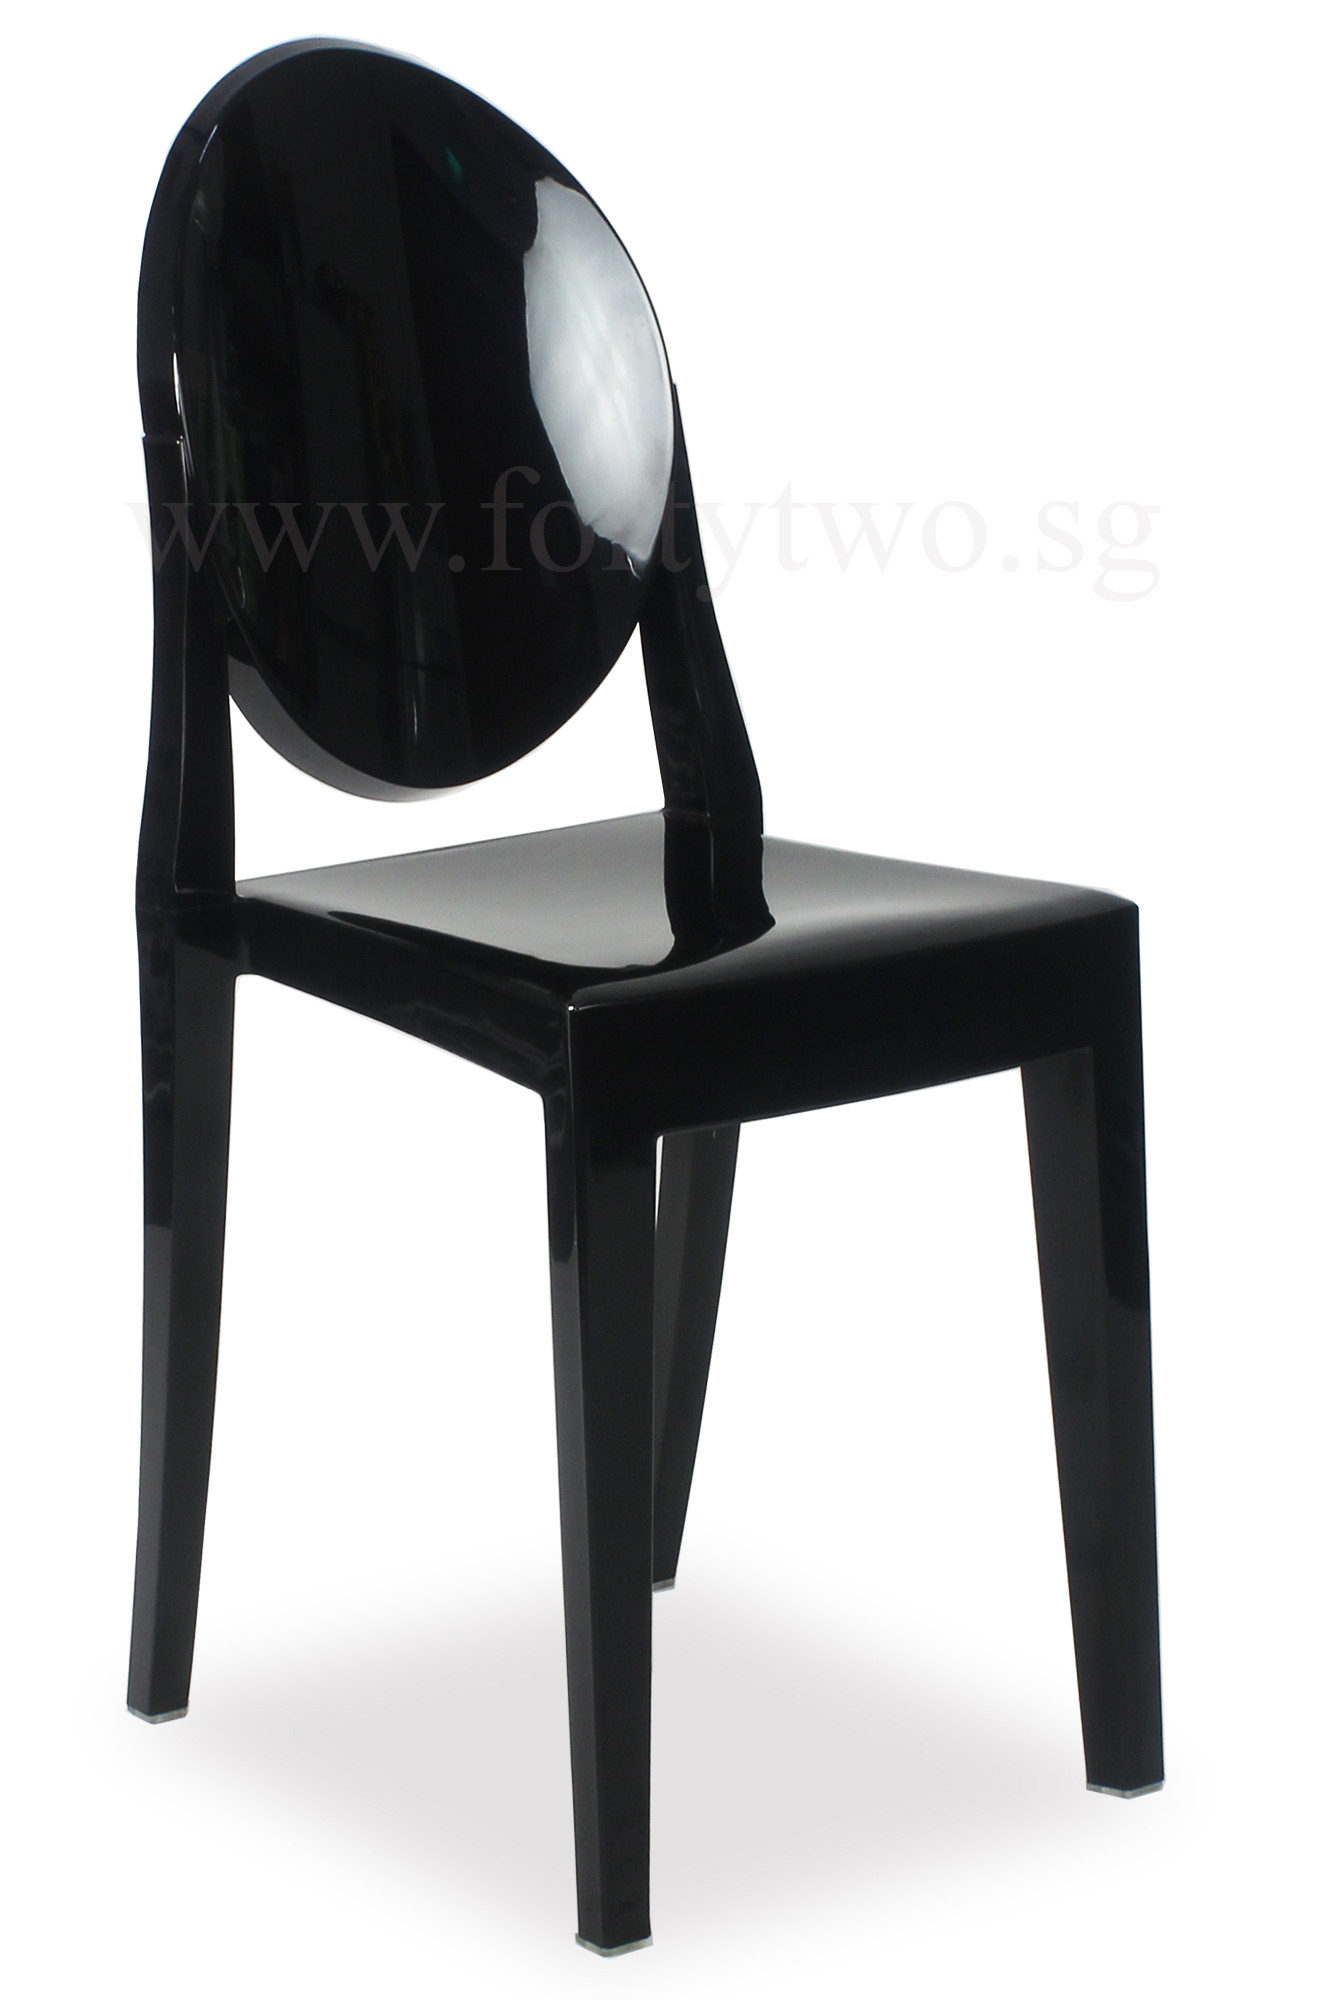 Black ghost chair best home design 2018 for Imitation designer chairs